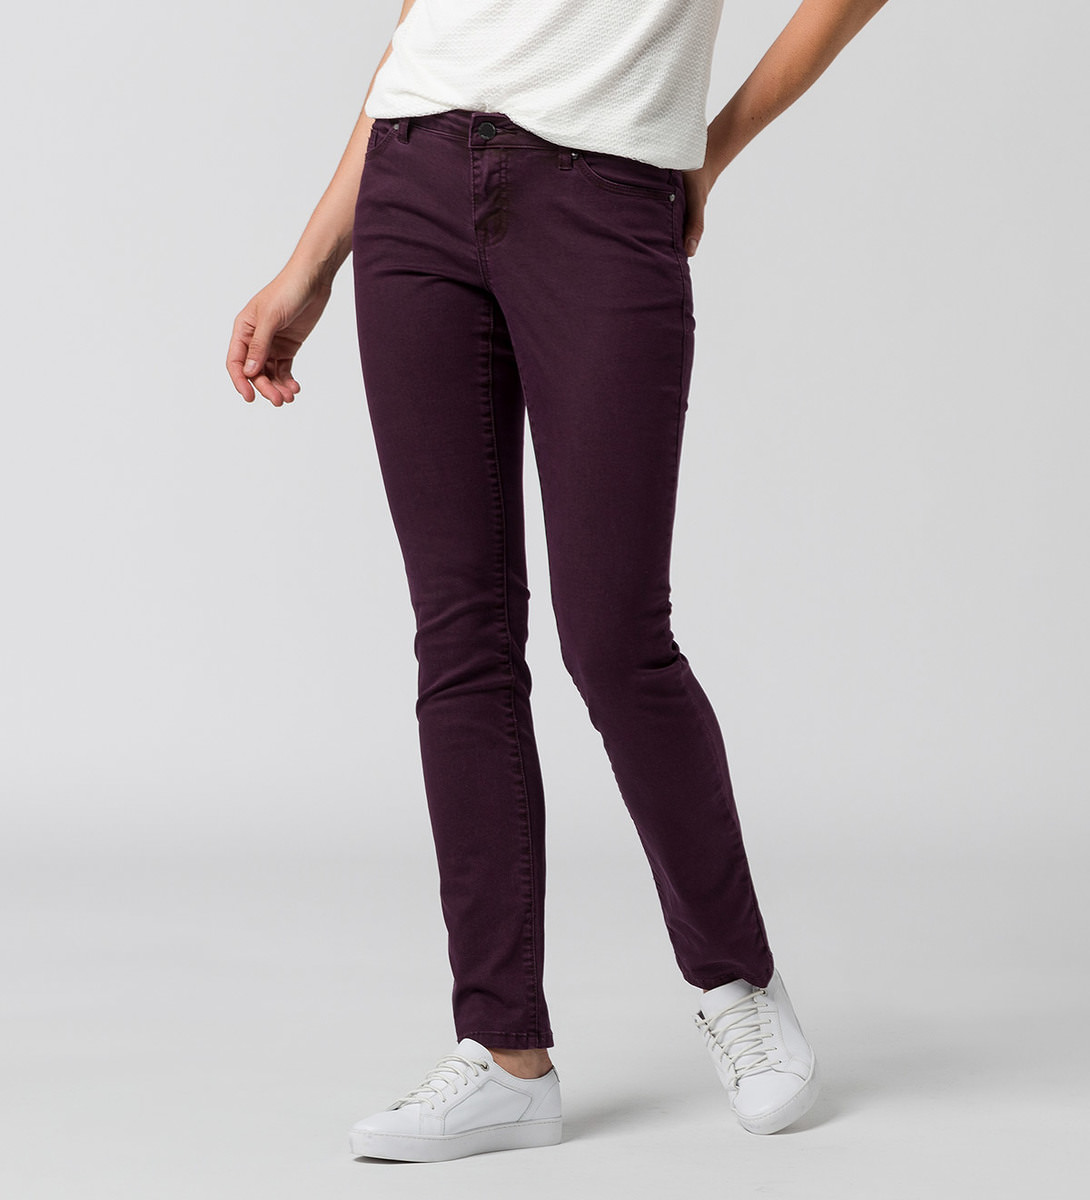 Jeans Seattle 32 Inch plum